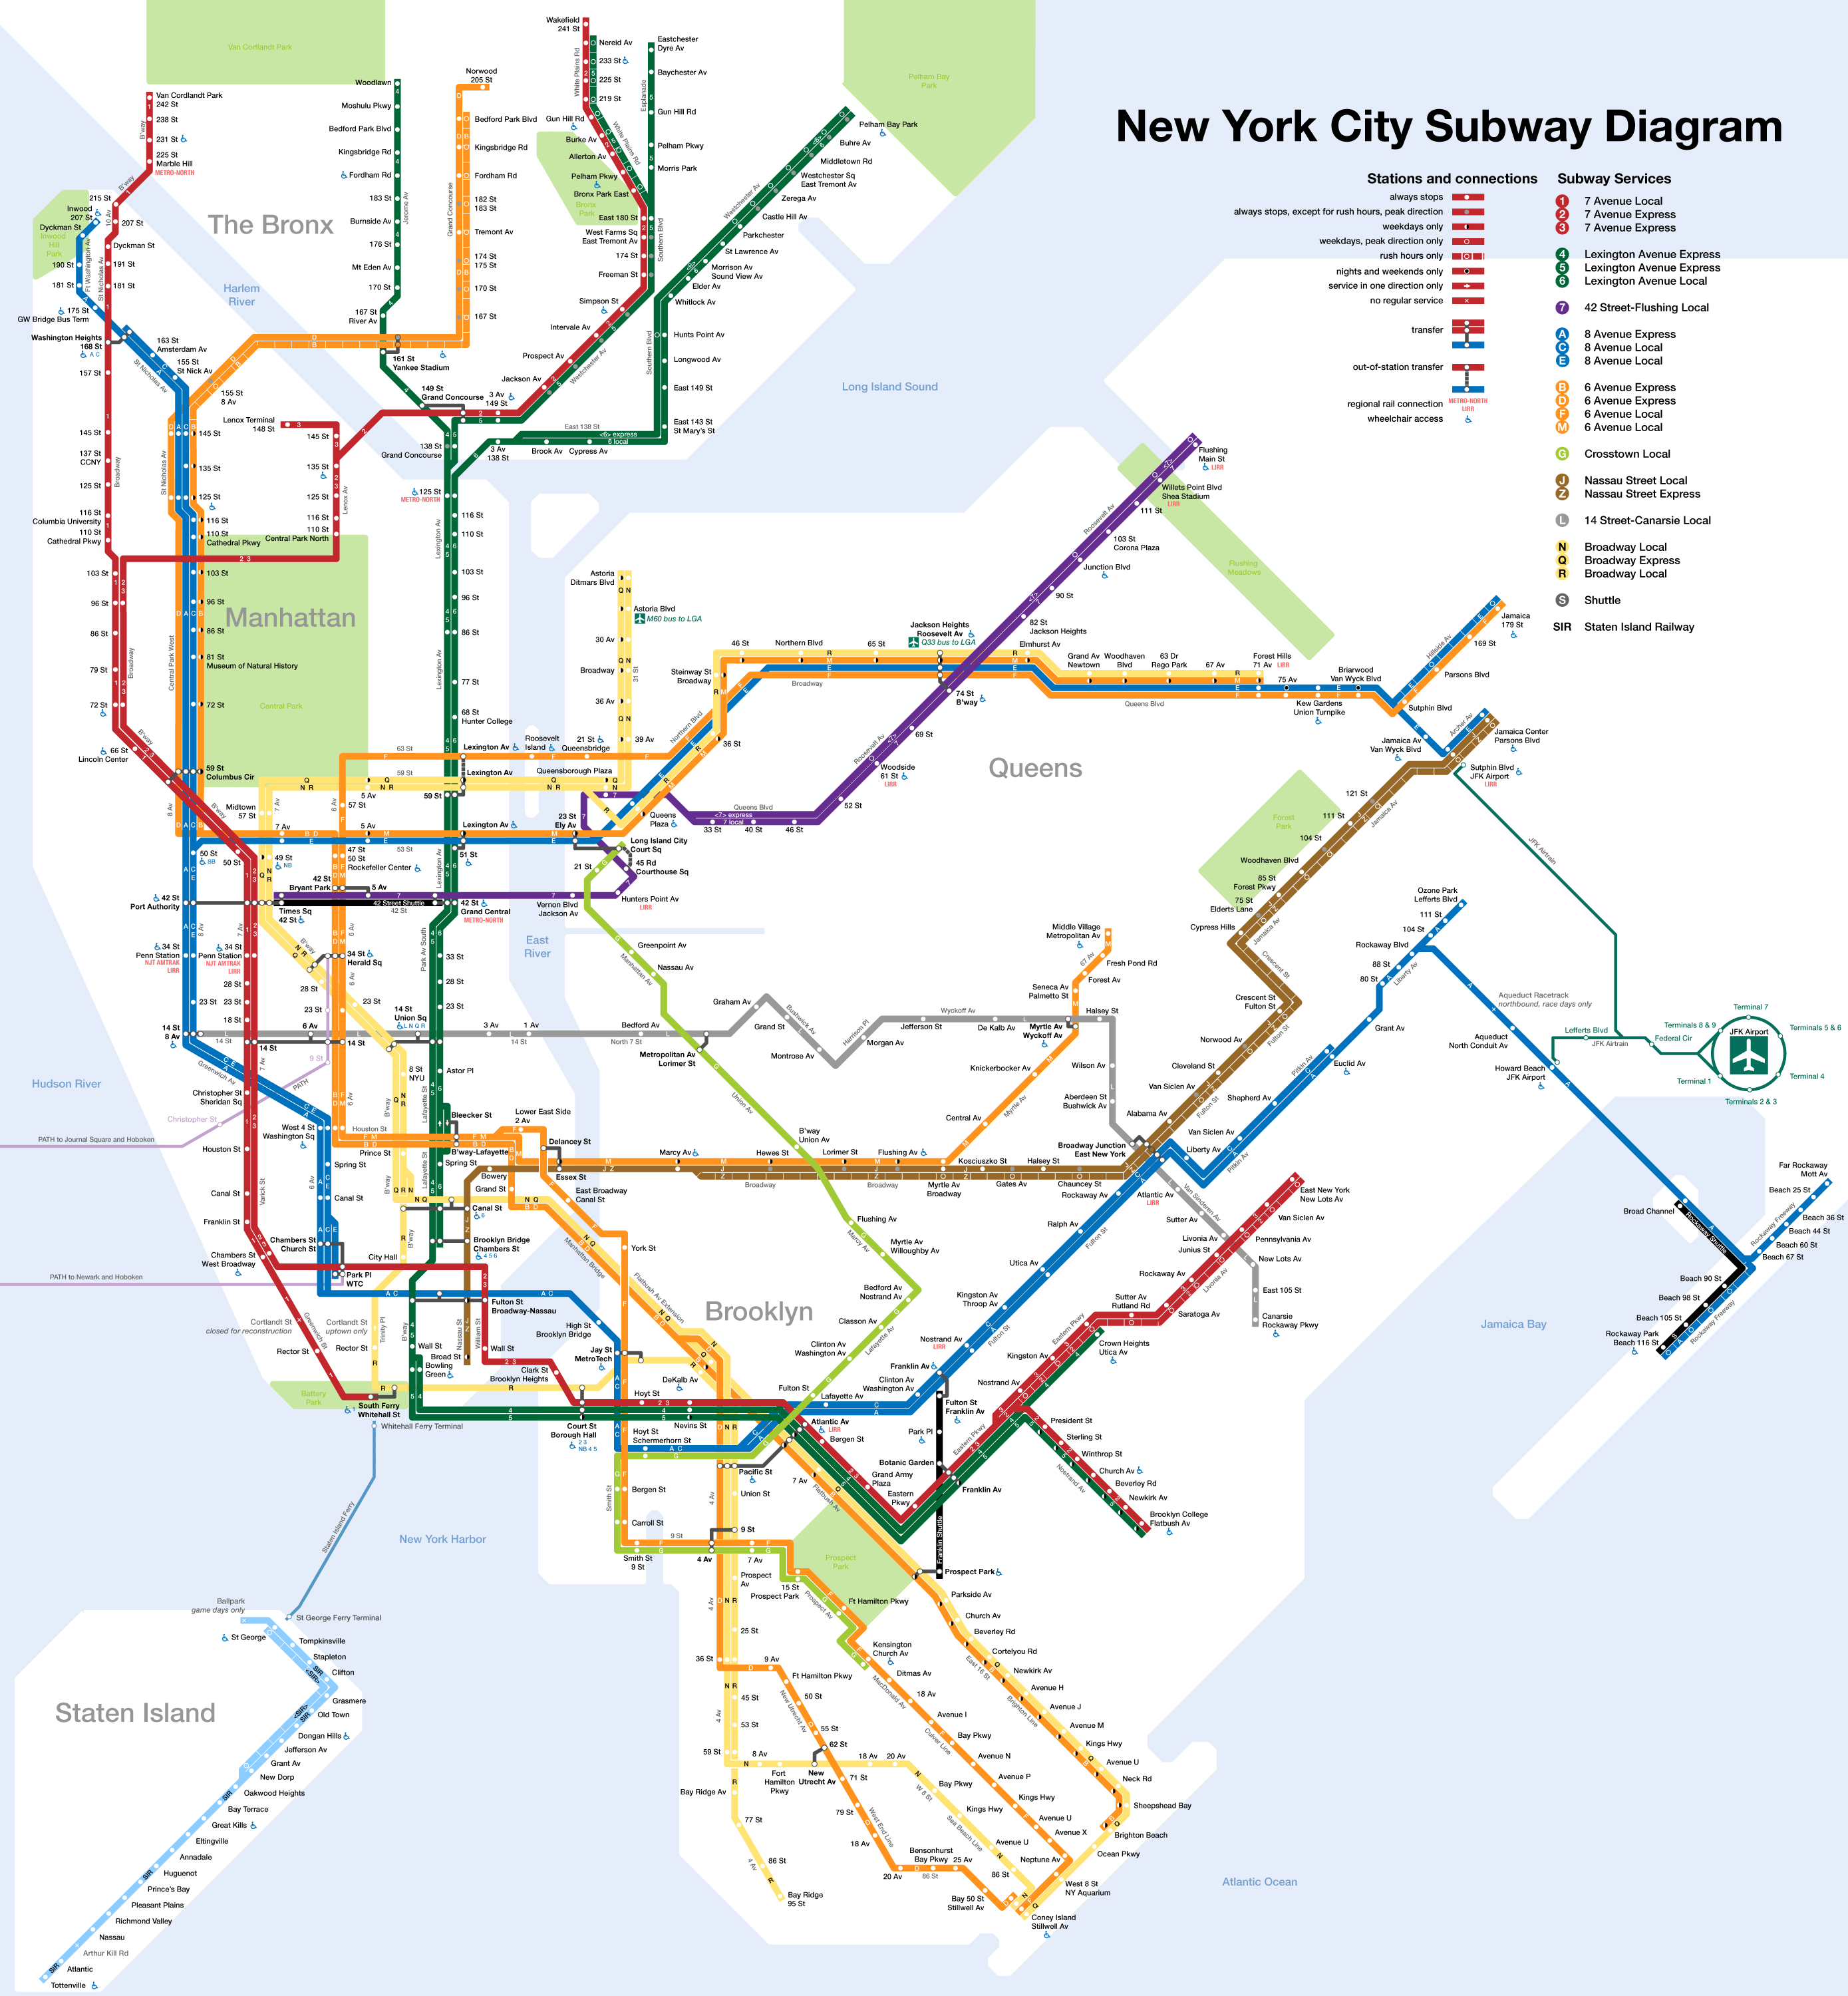 This Is Better Than The Mta Subway Map New York City You Have My